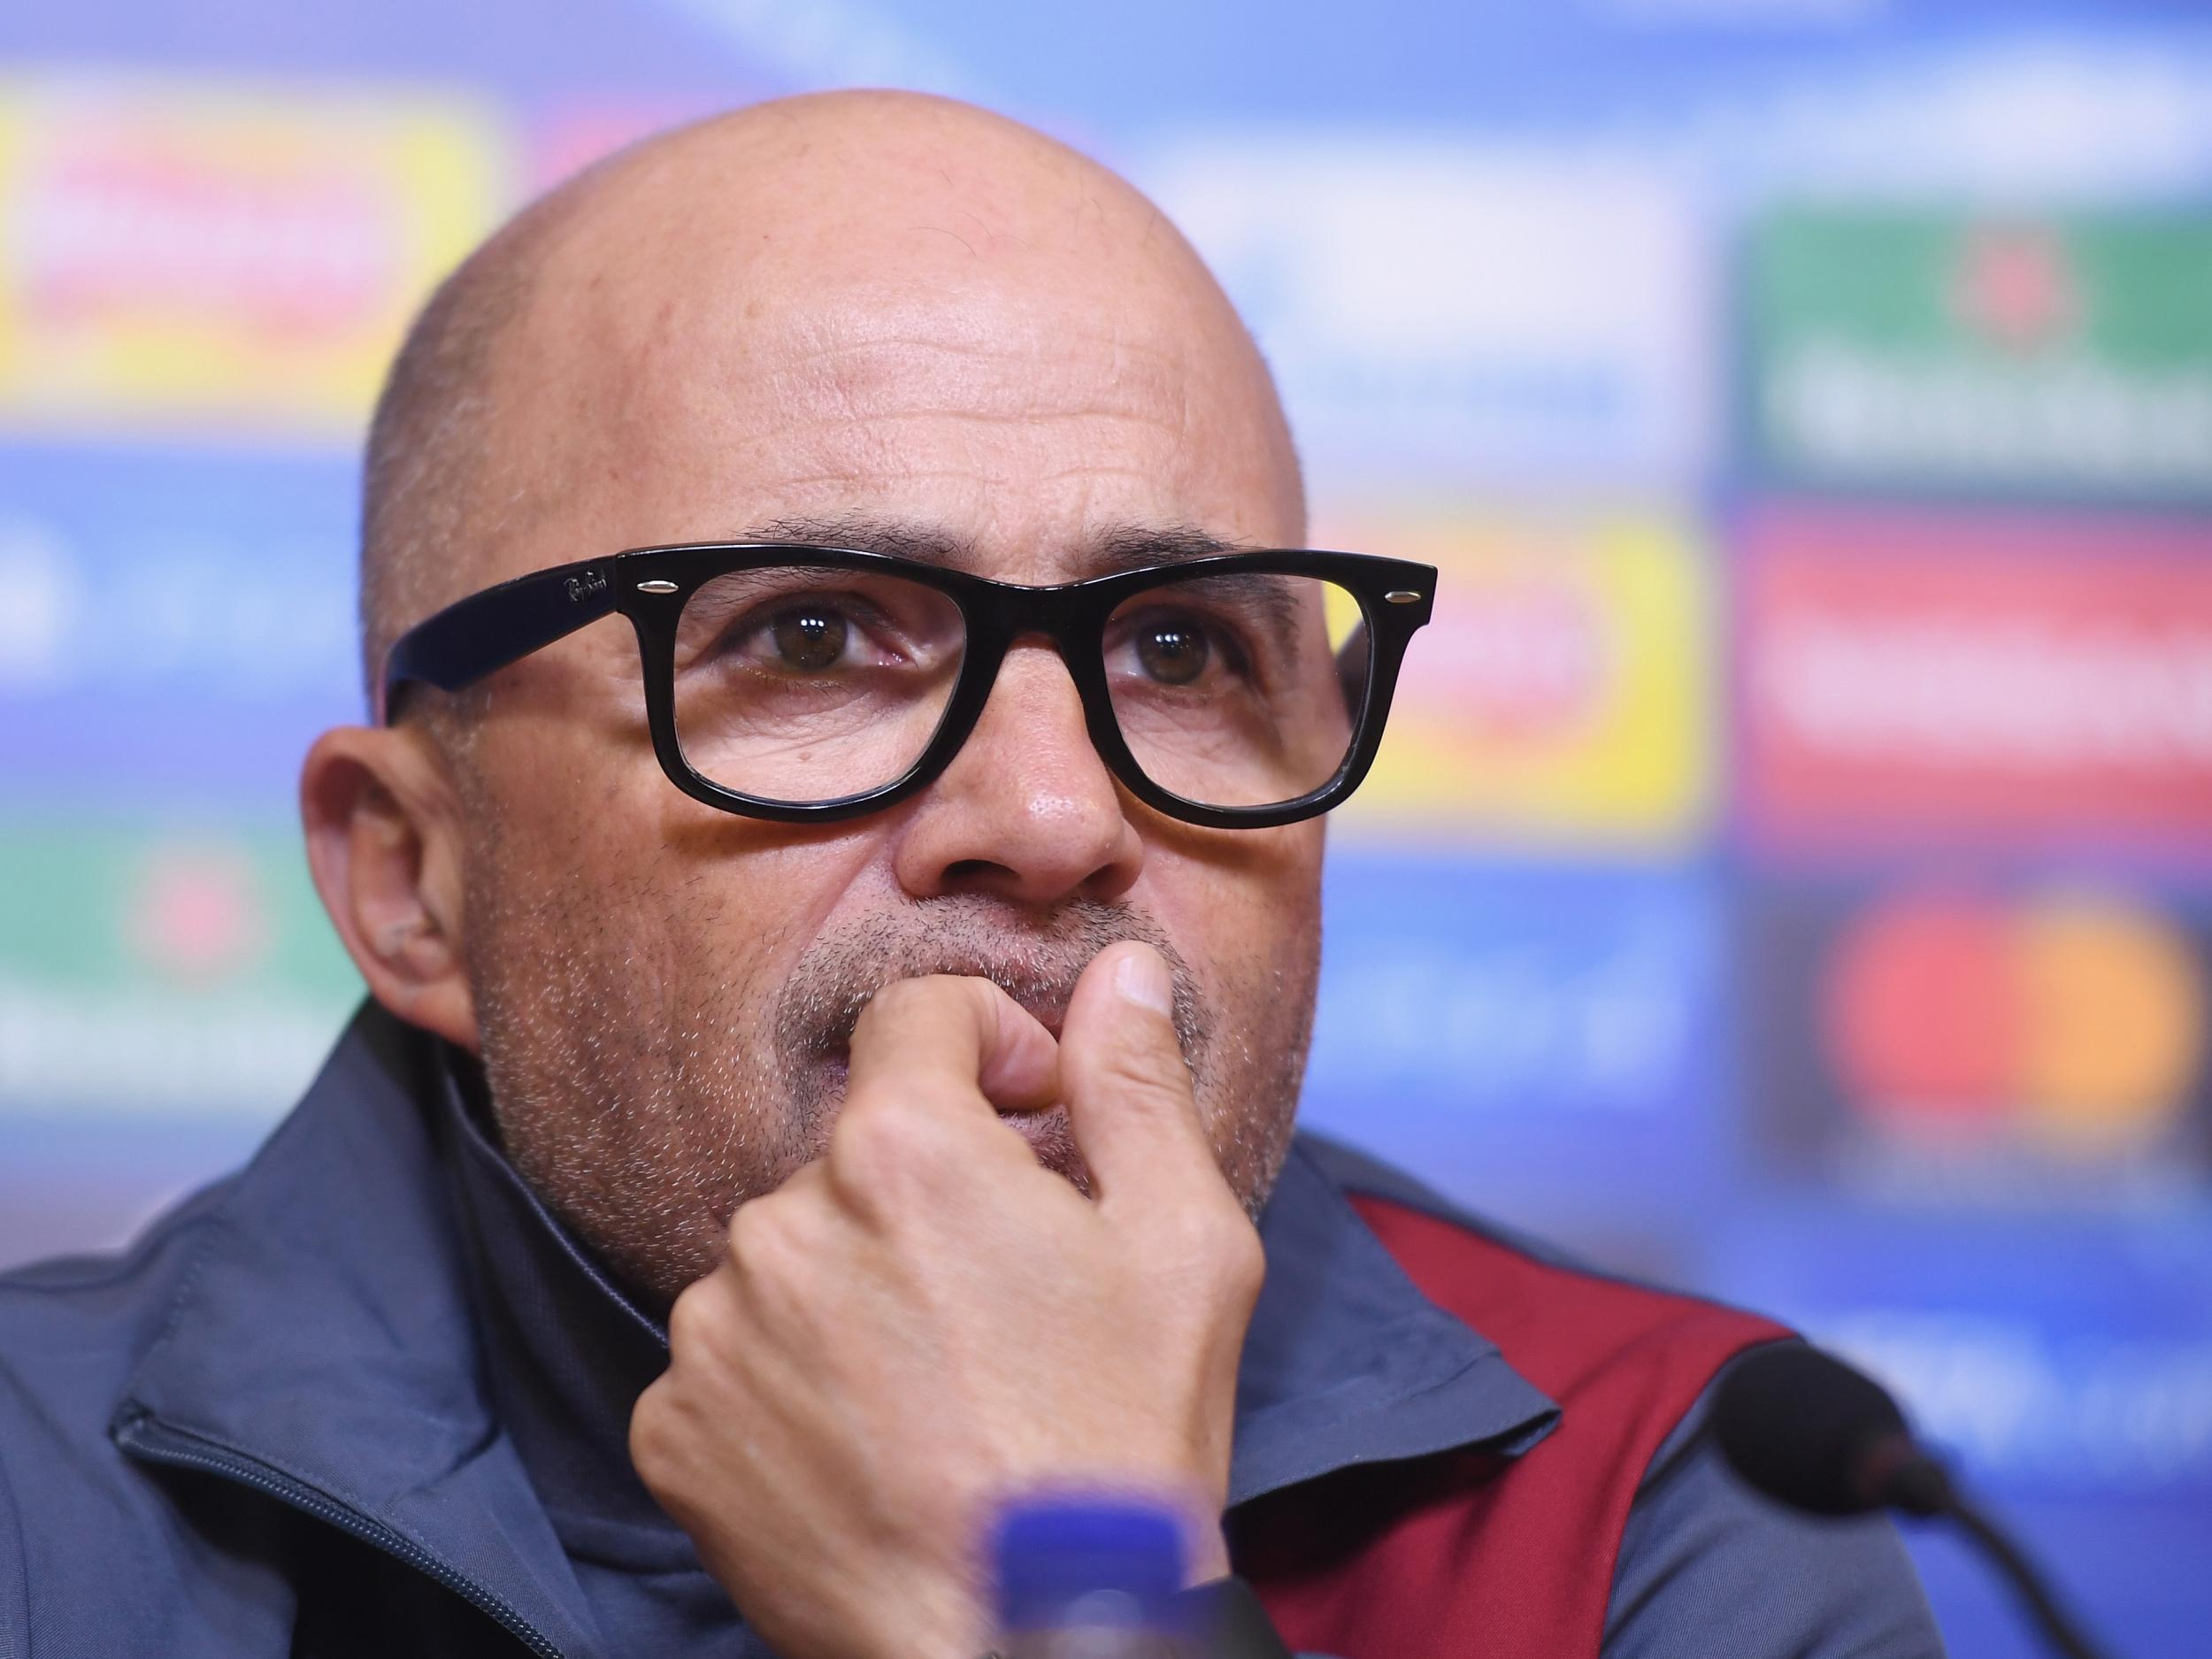 Argentina eye Jorge Sampaoli after sacking coach Edgardo Bauza with World Cup qualifying hanging in the balance